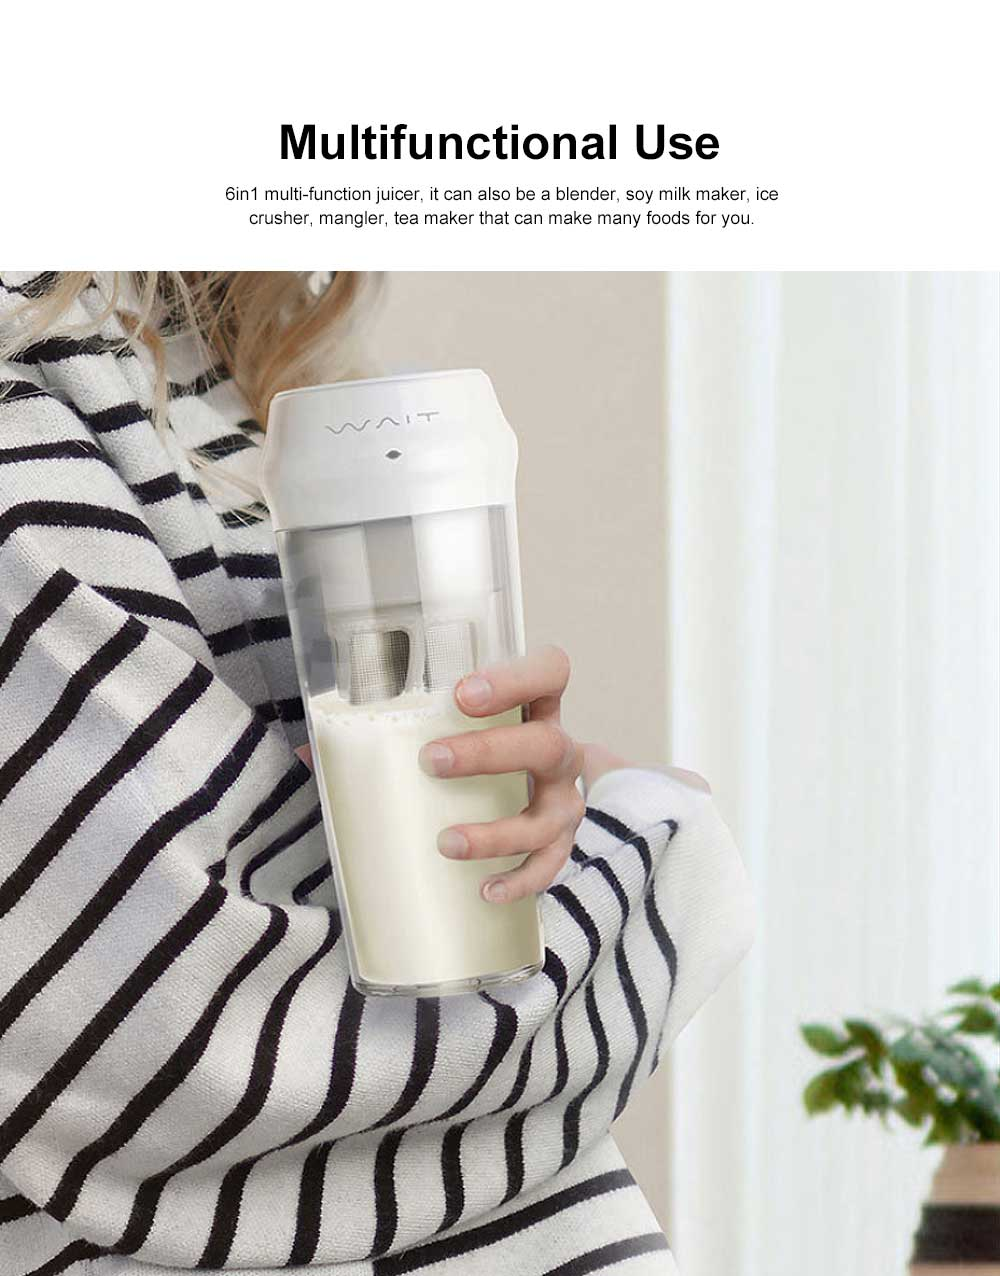 Portable Juicer Cup 6 in 1 Multifunctional Fruit Mixing Machine Blender Mini Juice Mixer with Powerful Motor 2